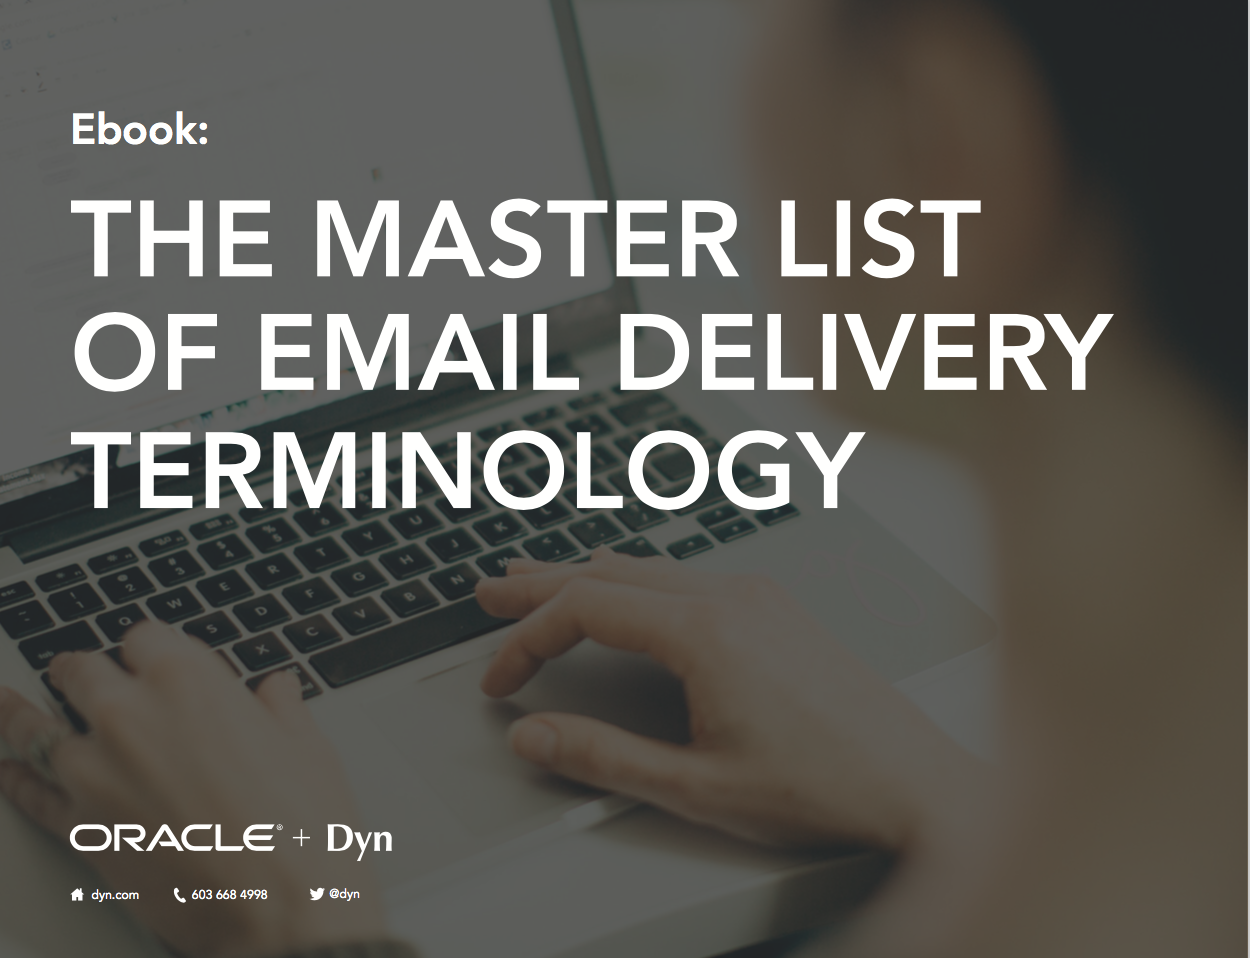 The Master List of Email Delivery Terminology